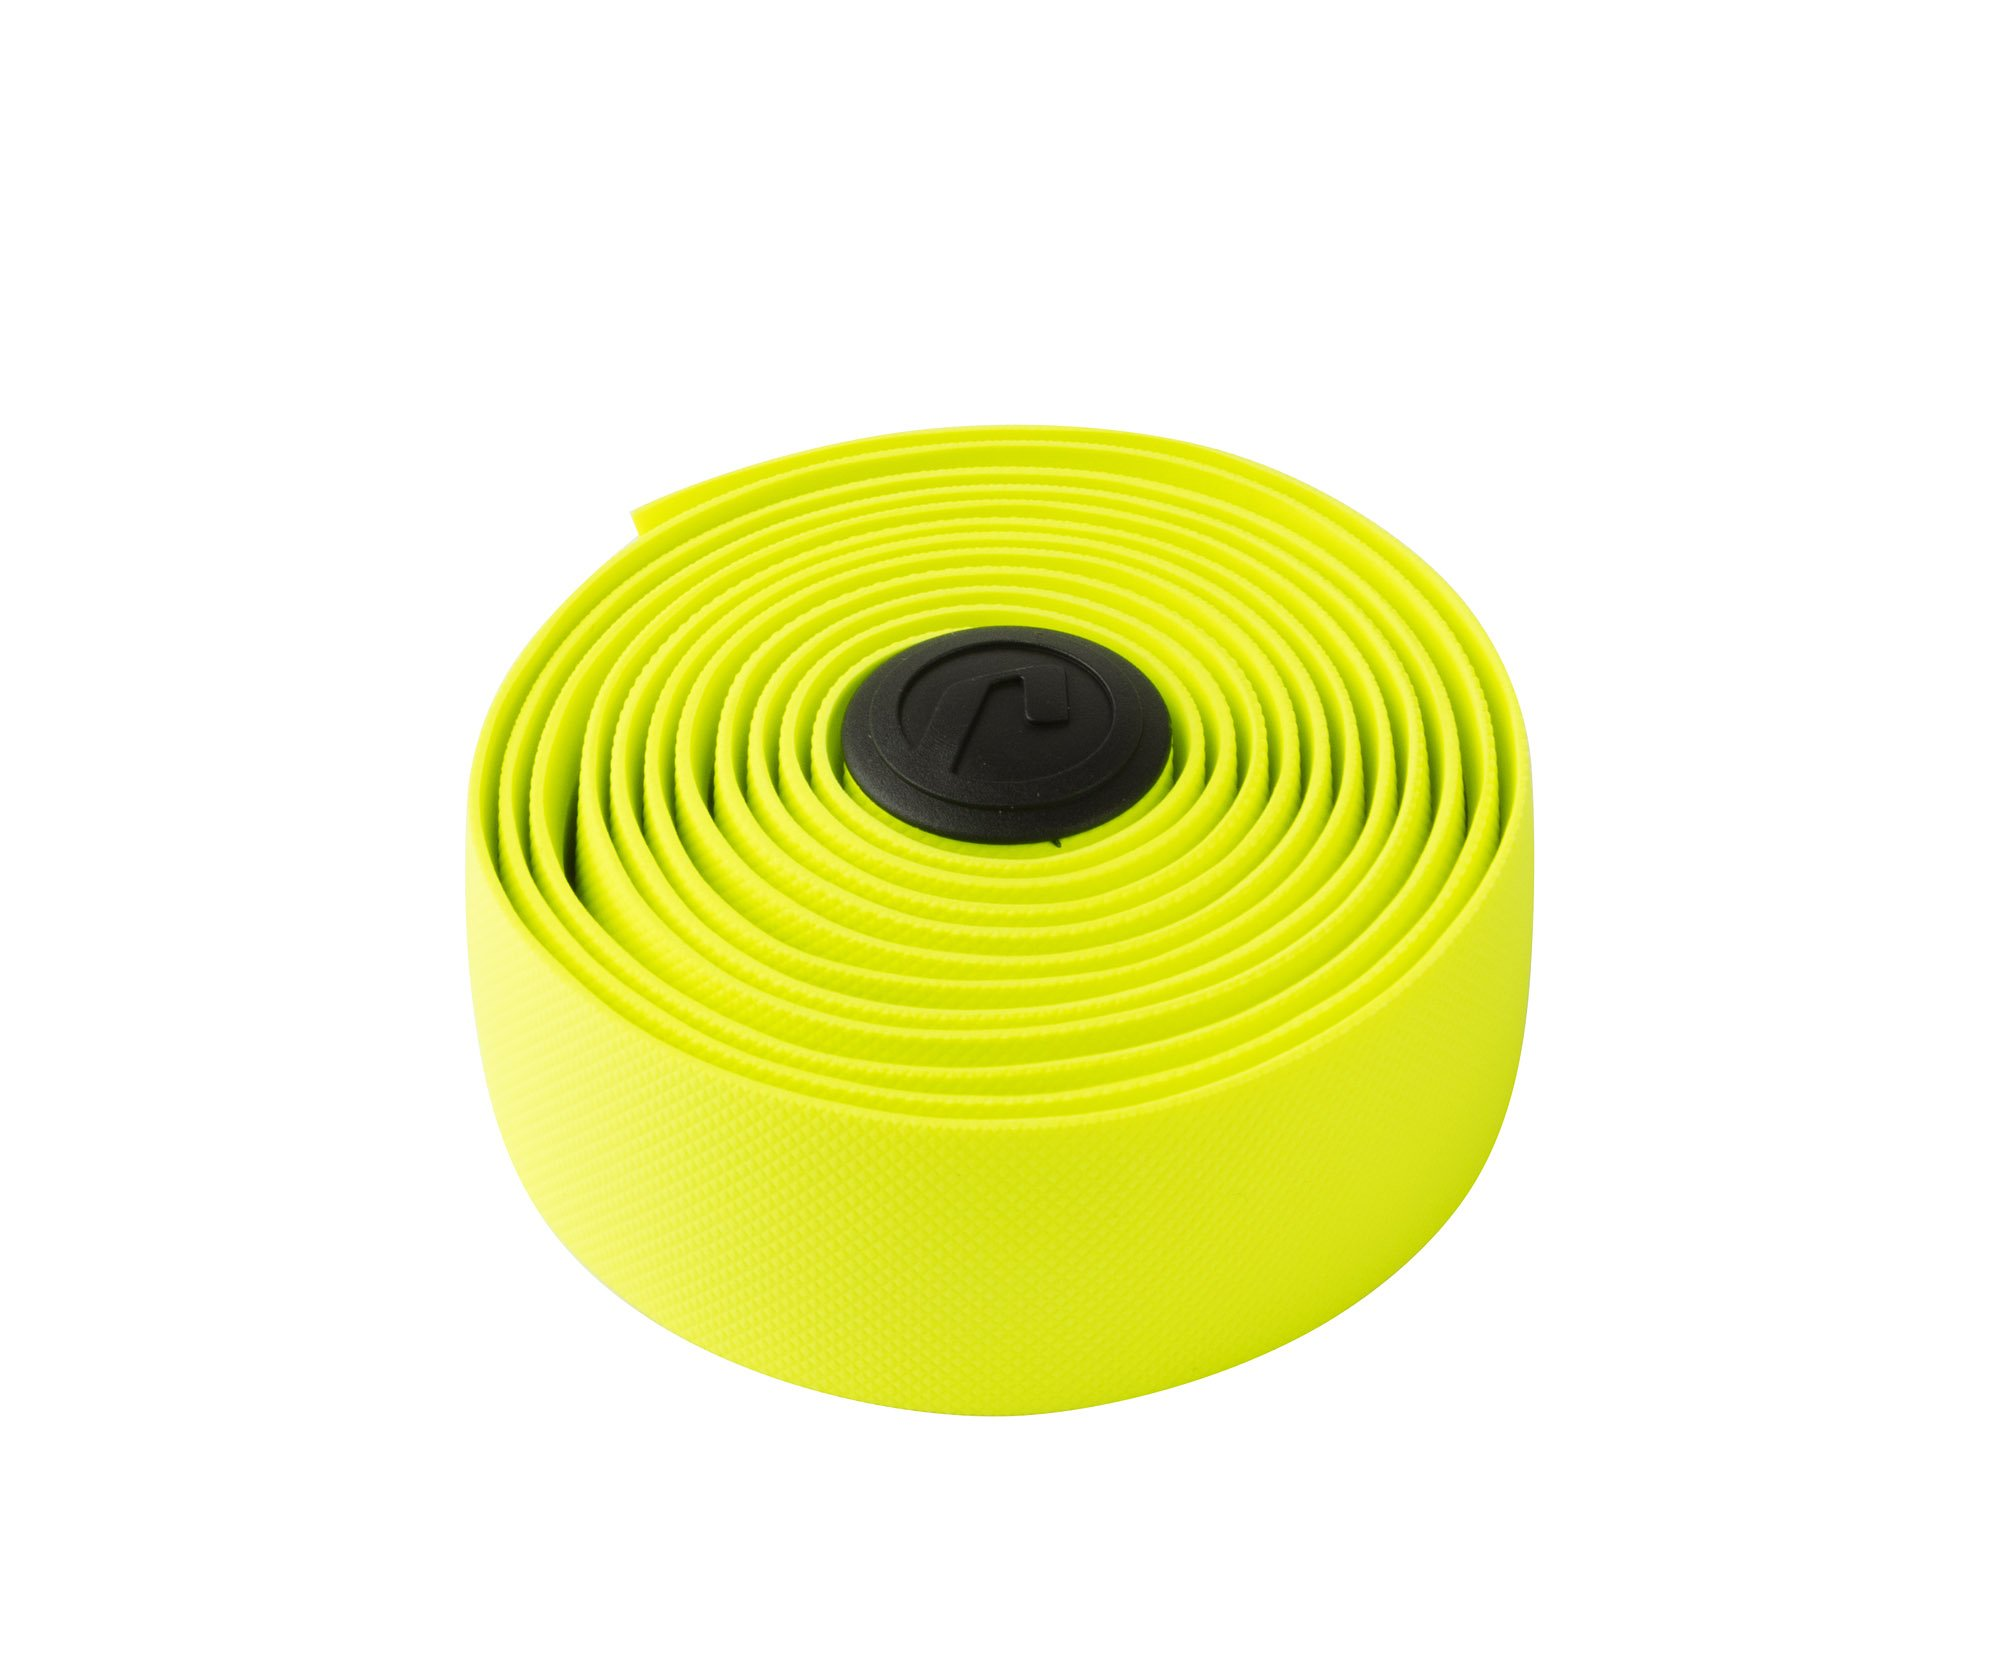 Accent ac-tape nastro manubrio normale e fluo, Fixed Gear Road Touring City Bike, Fluo Yellow